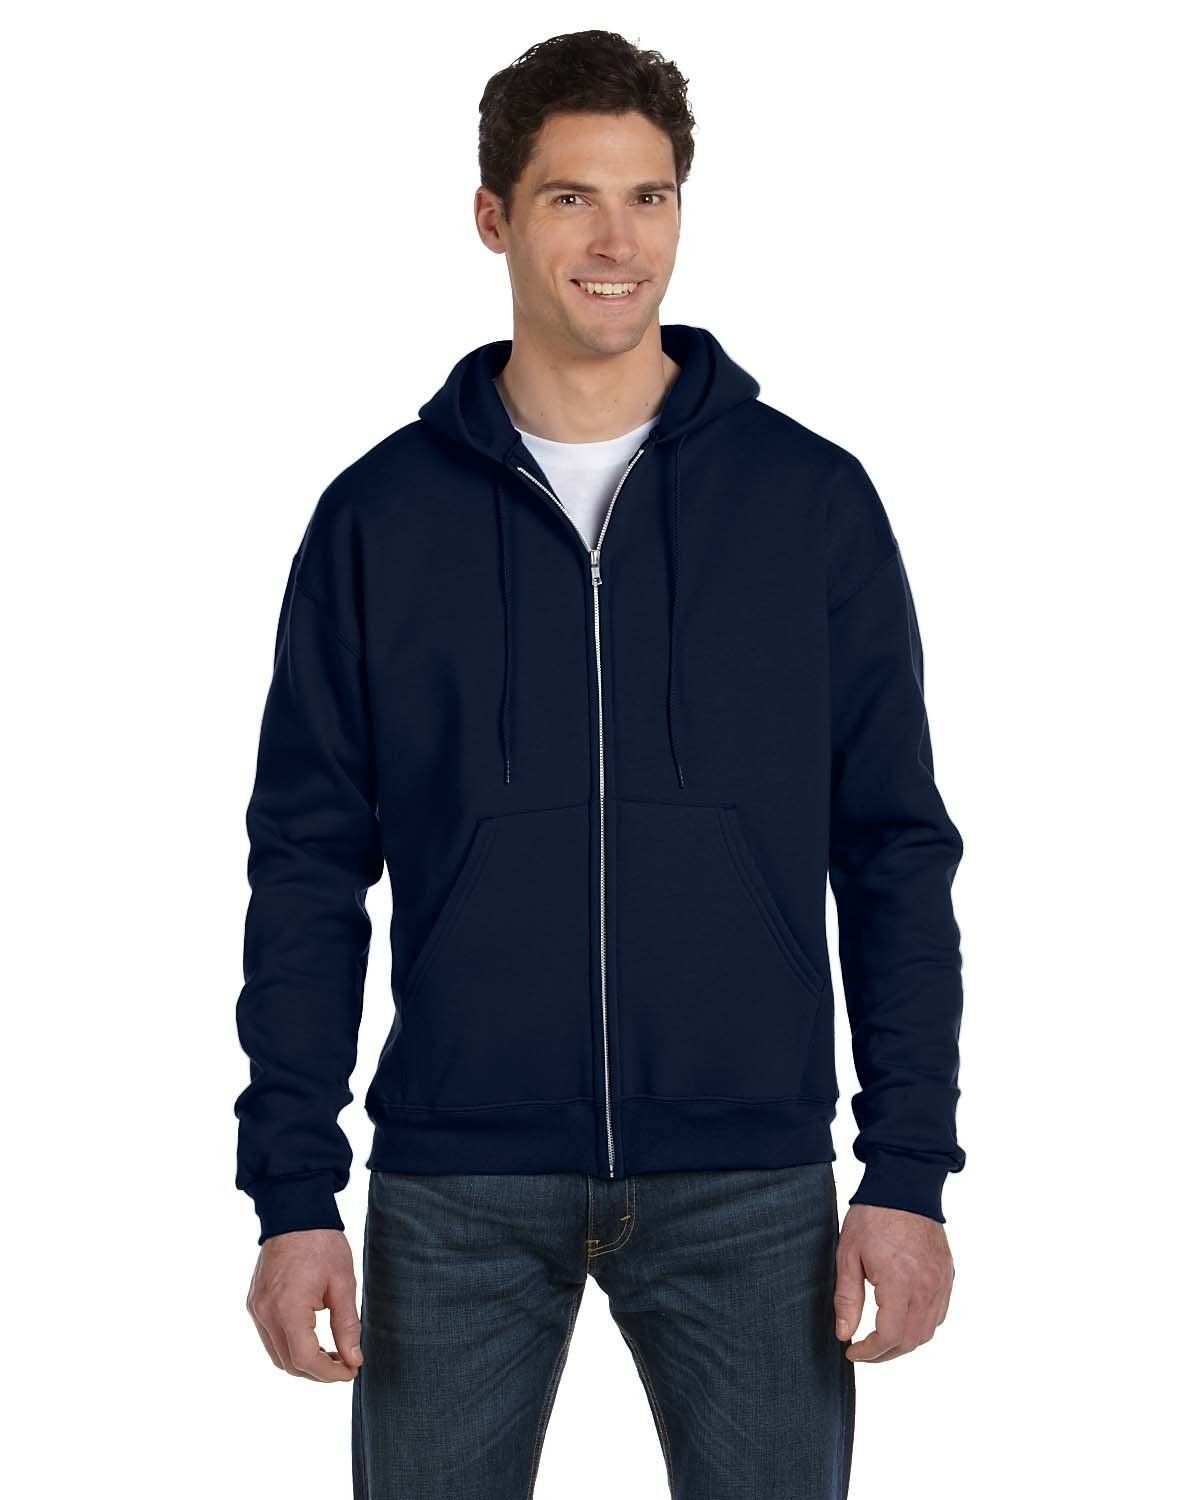 385cc961 Champion Double Dry Eco Full-Zip Hood S800 Navy | Products | Hooded ...